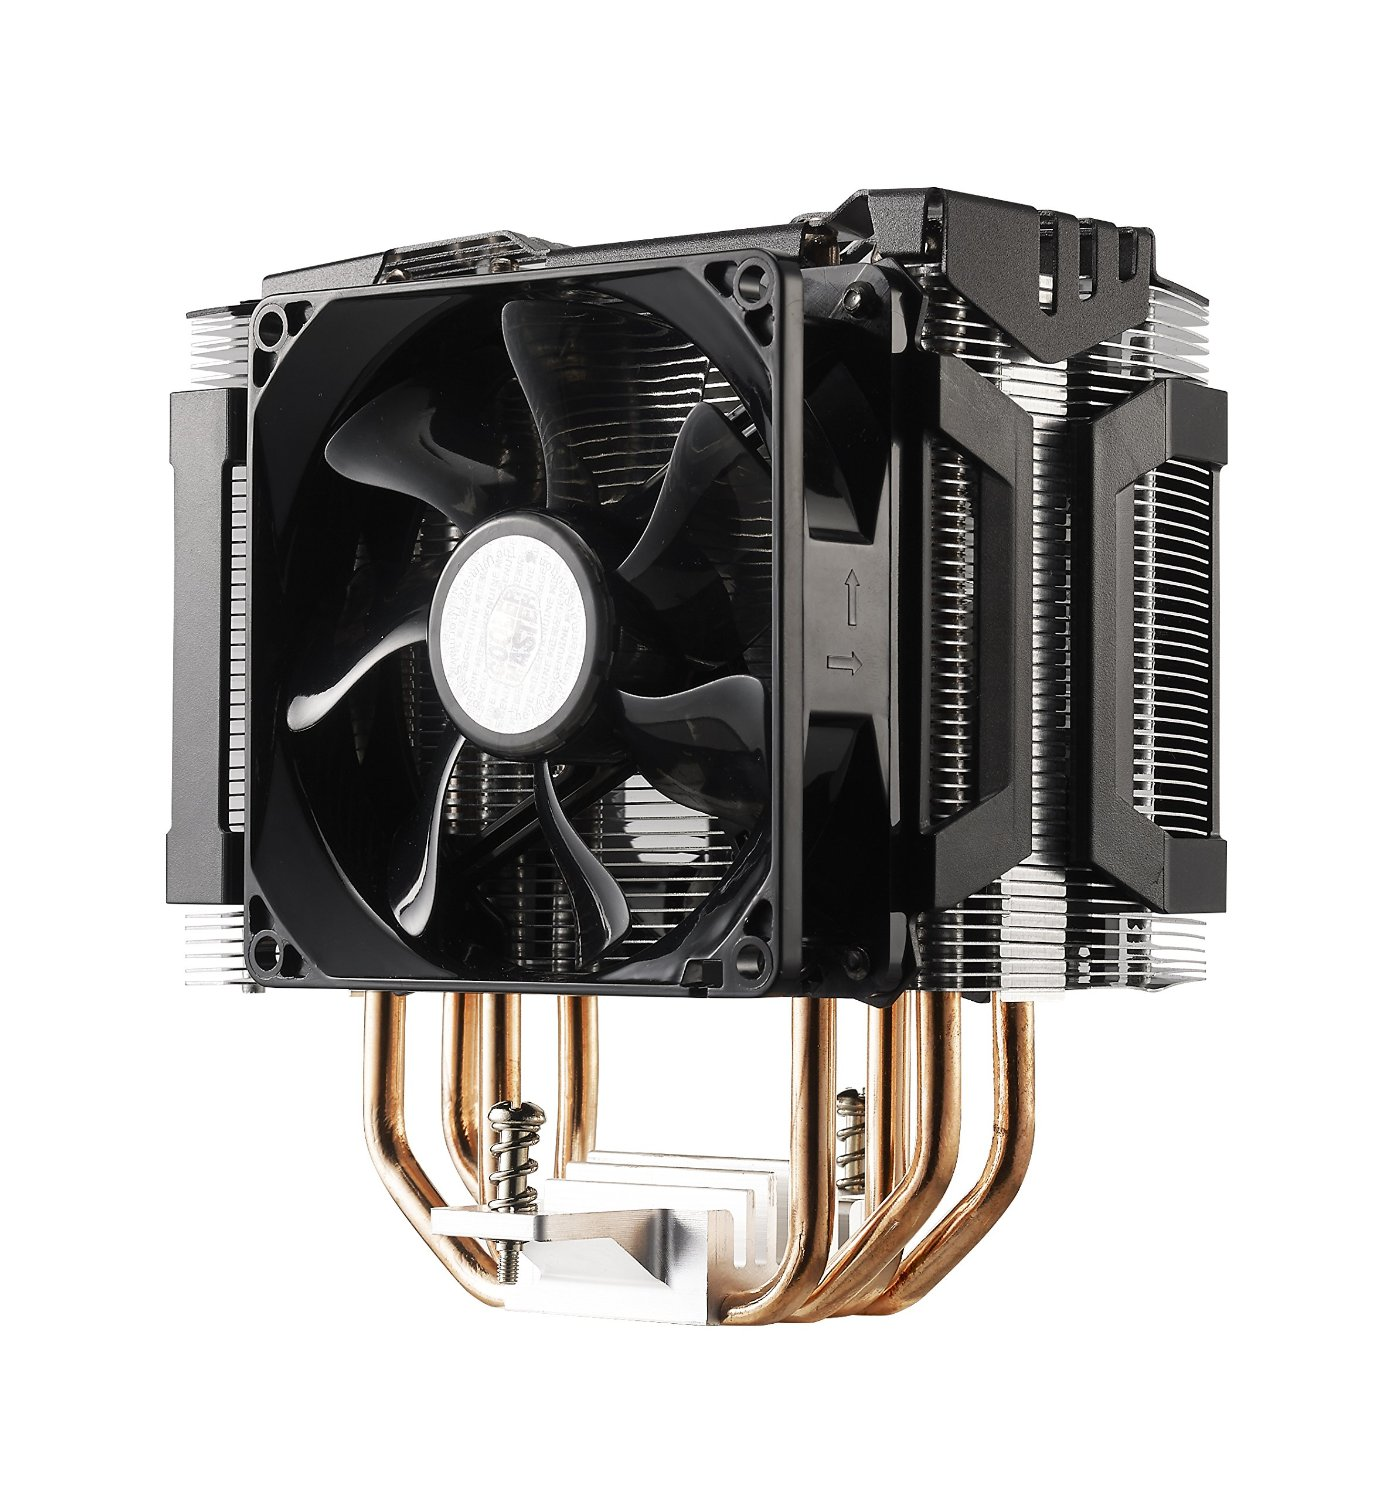 Cooler Master Hyper D92 - CPU Air Cooler with Dual 92mm Offset Push-Pull Fans and Accelerated Cooling System (RR-HD92-28PK-R1)